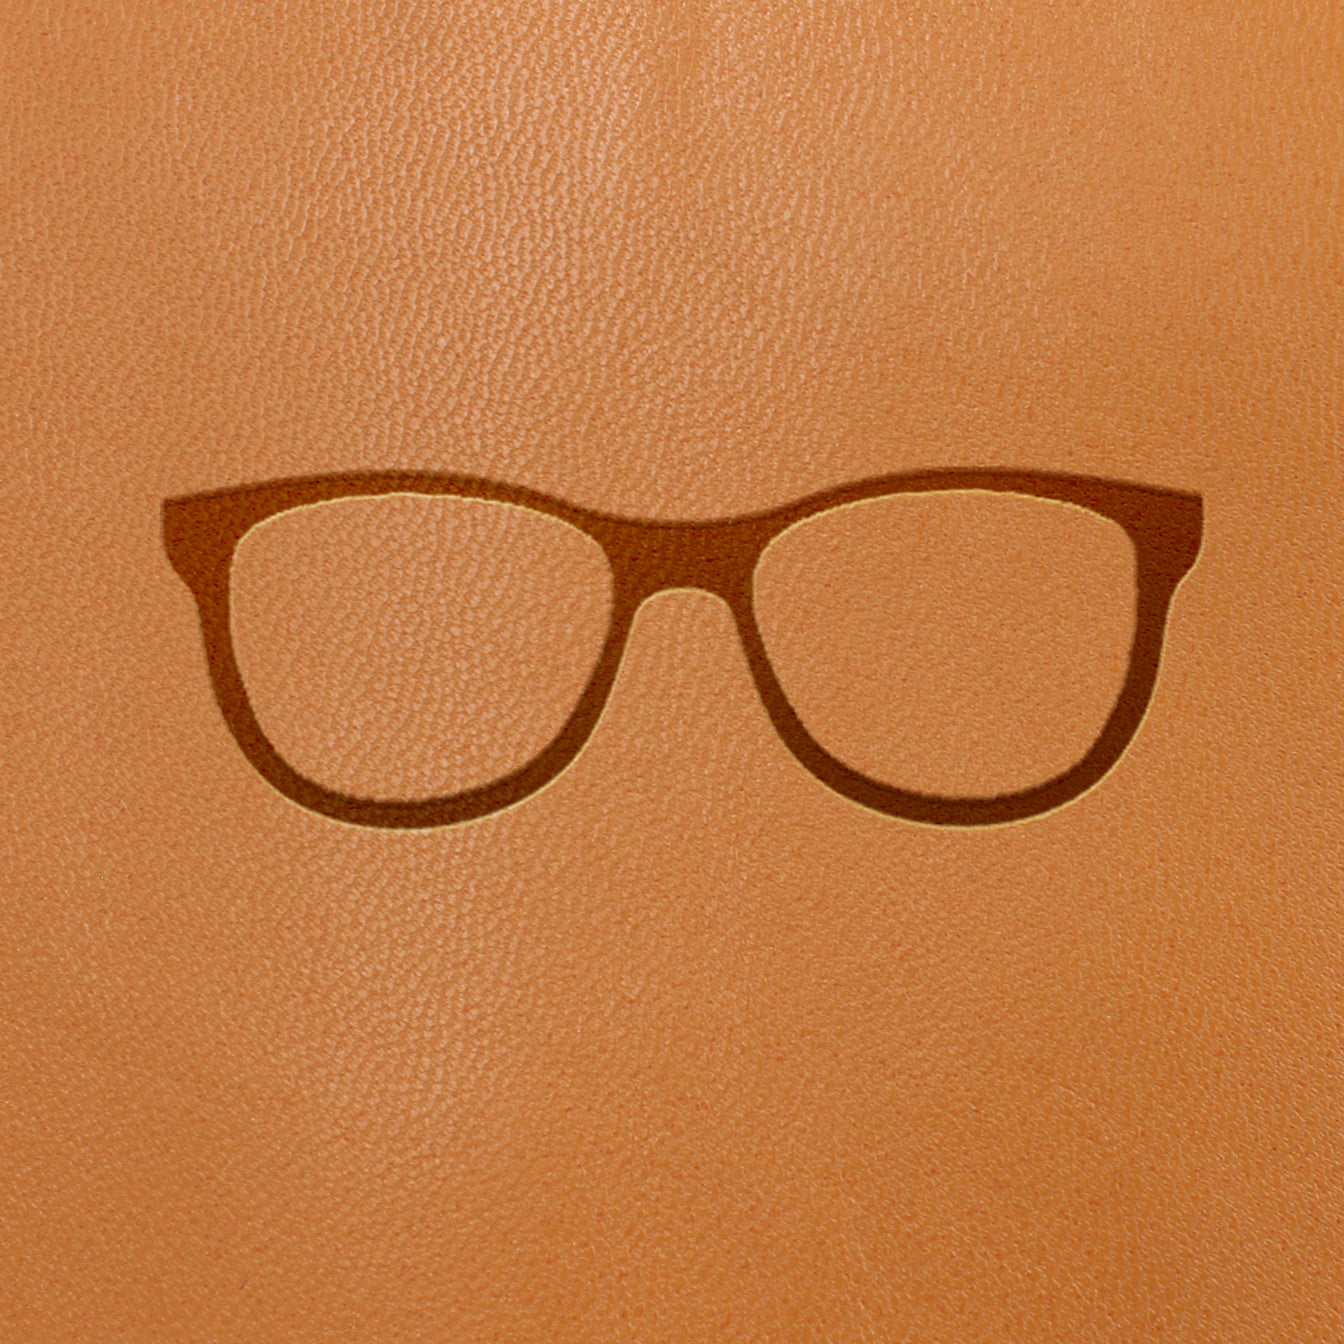 Glasses Symbol - Fire Branded Images